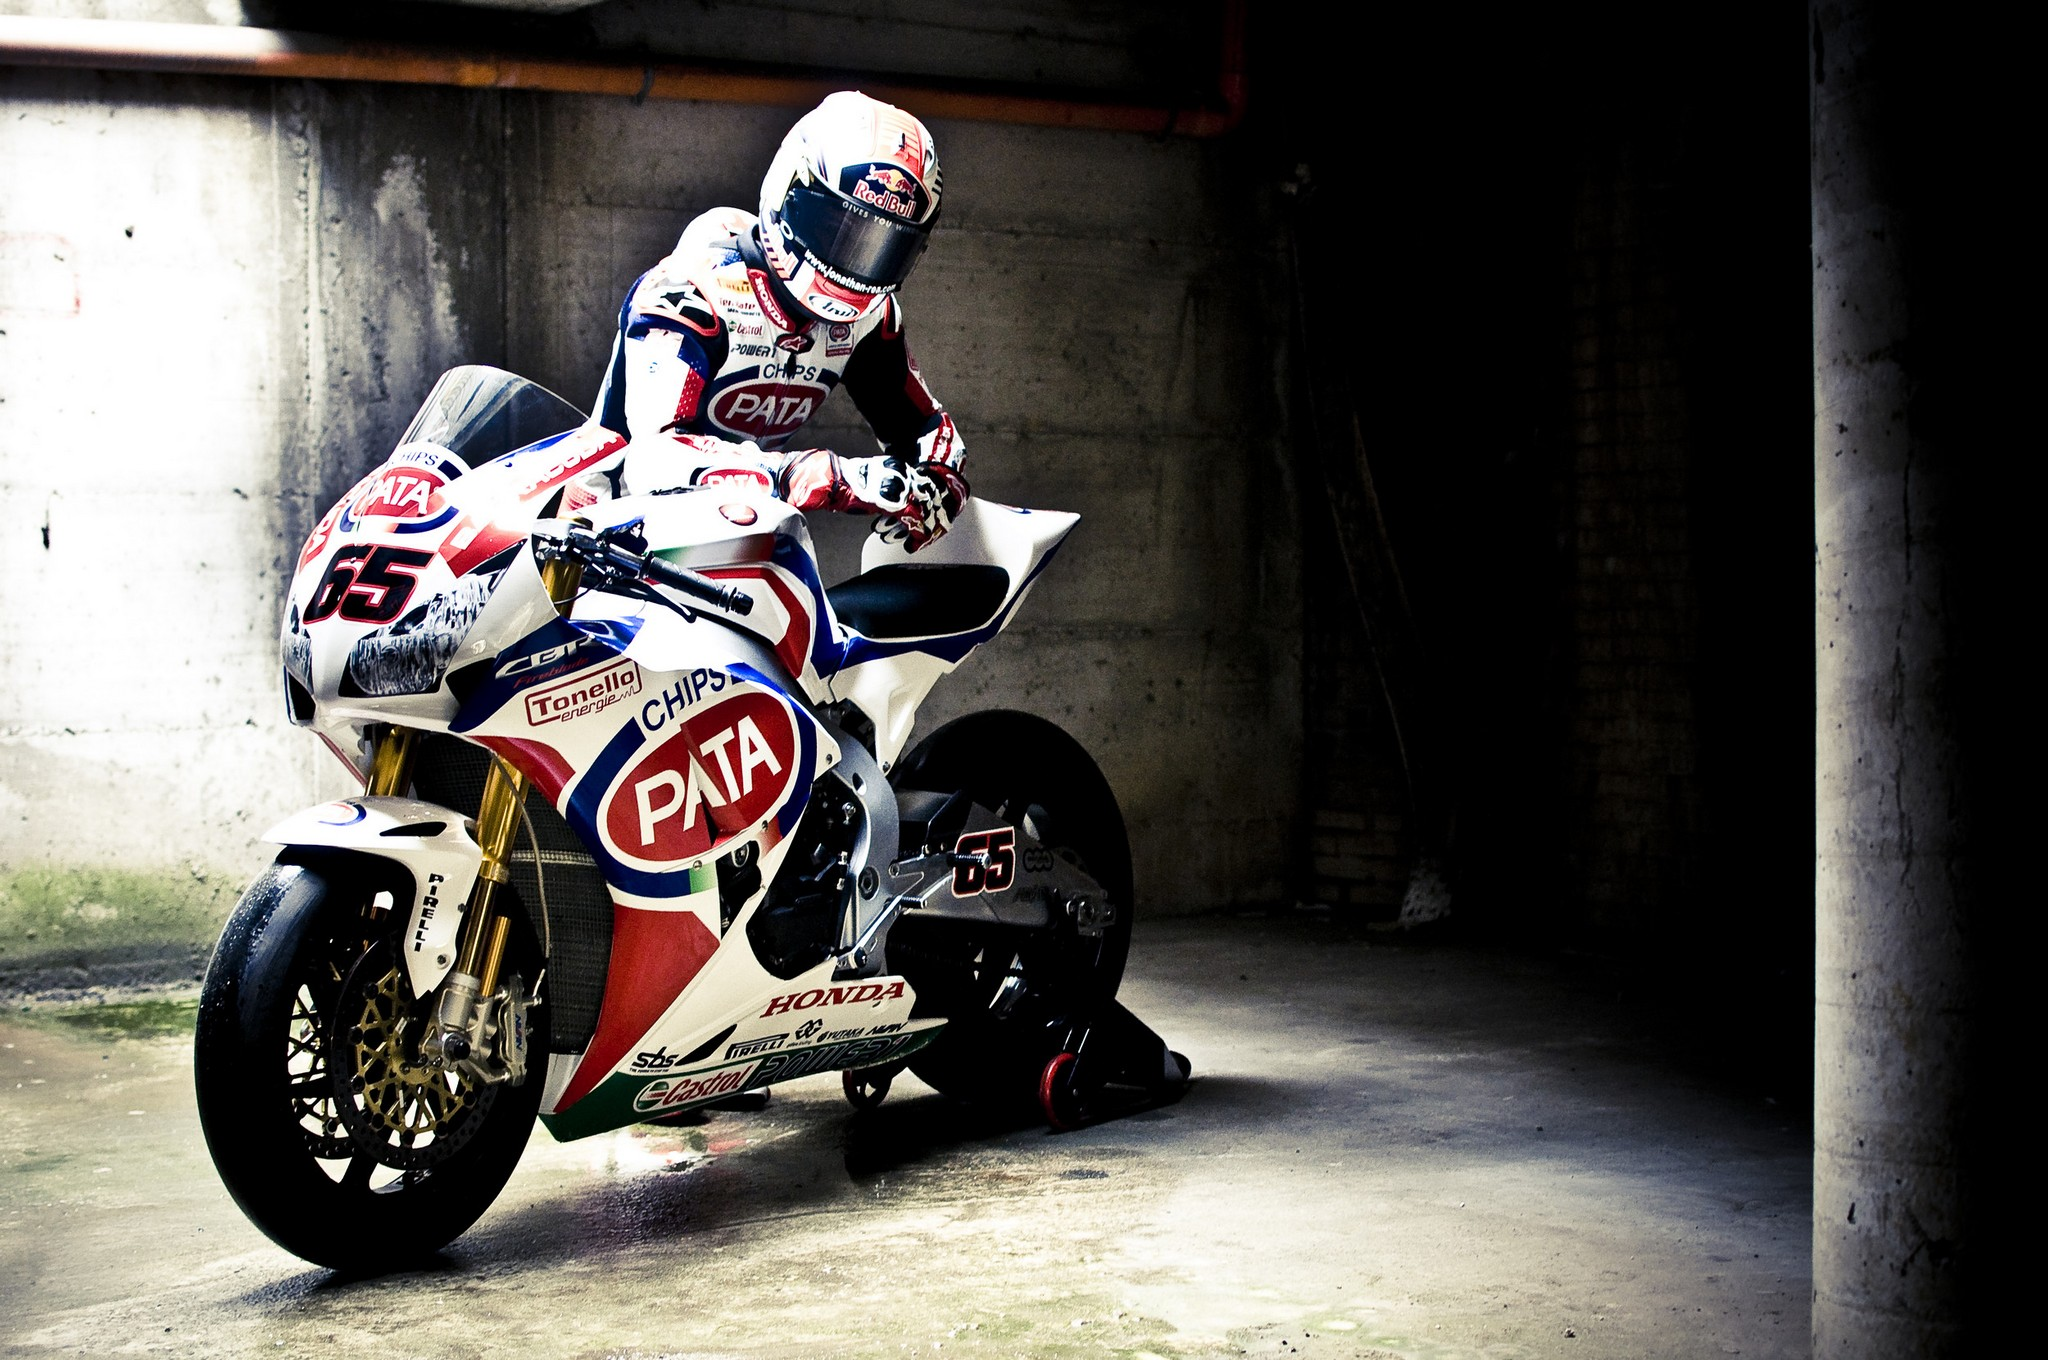 So you've decided the 2020 honda accord is the midsize sedan for you. Pata Honda 2014 World Superbike and Supersport Team